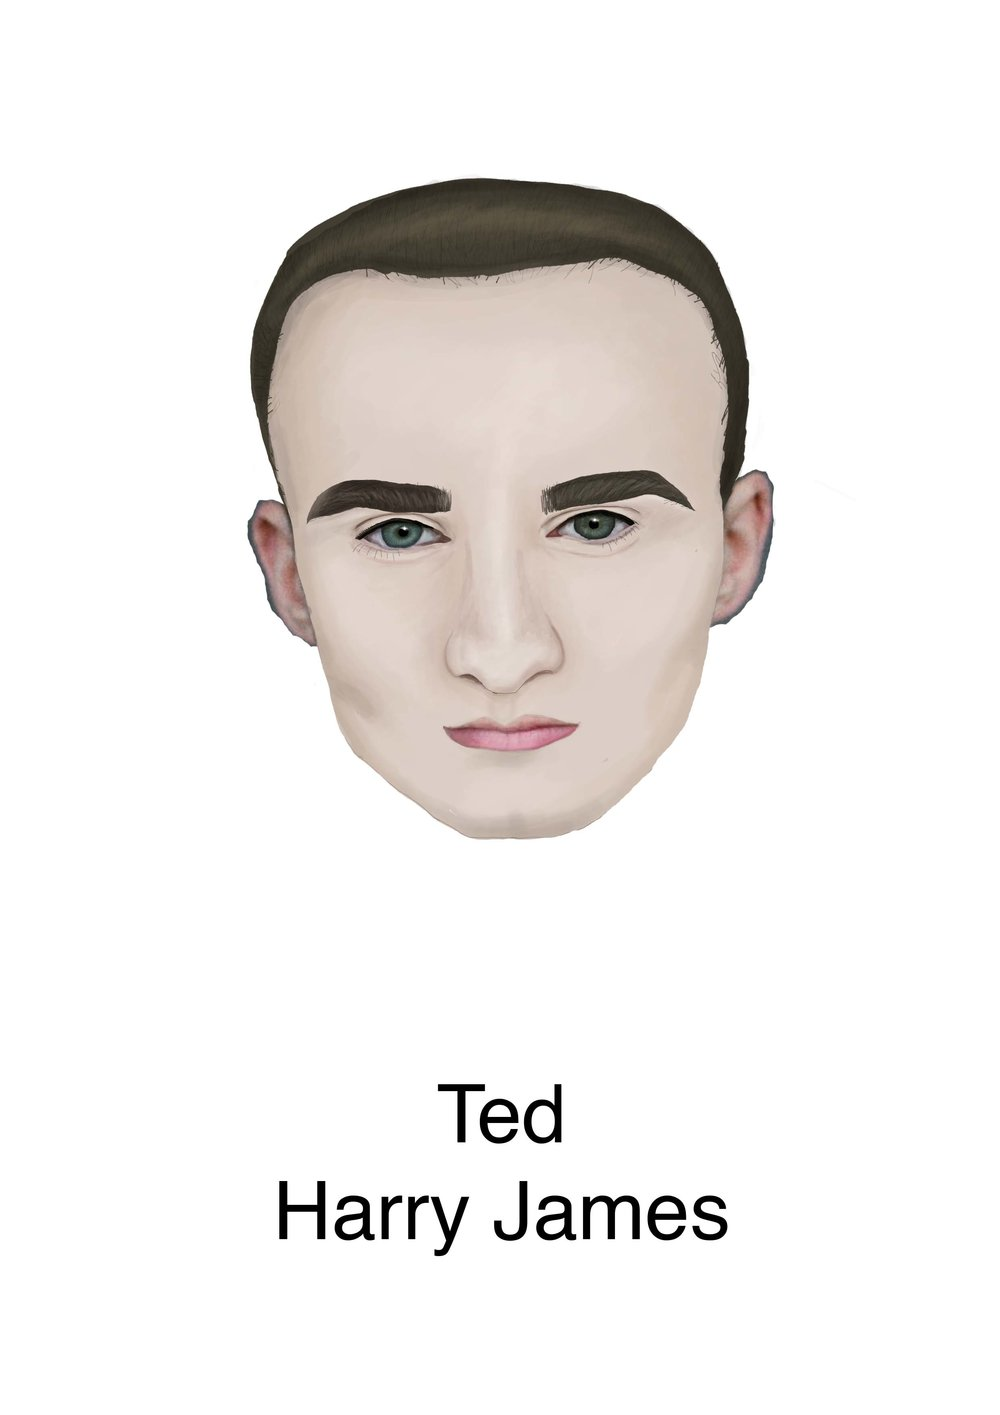 james ted design.jpg